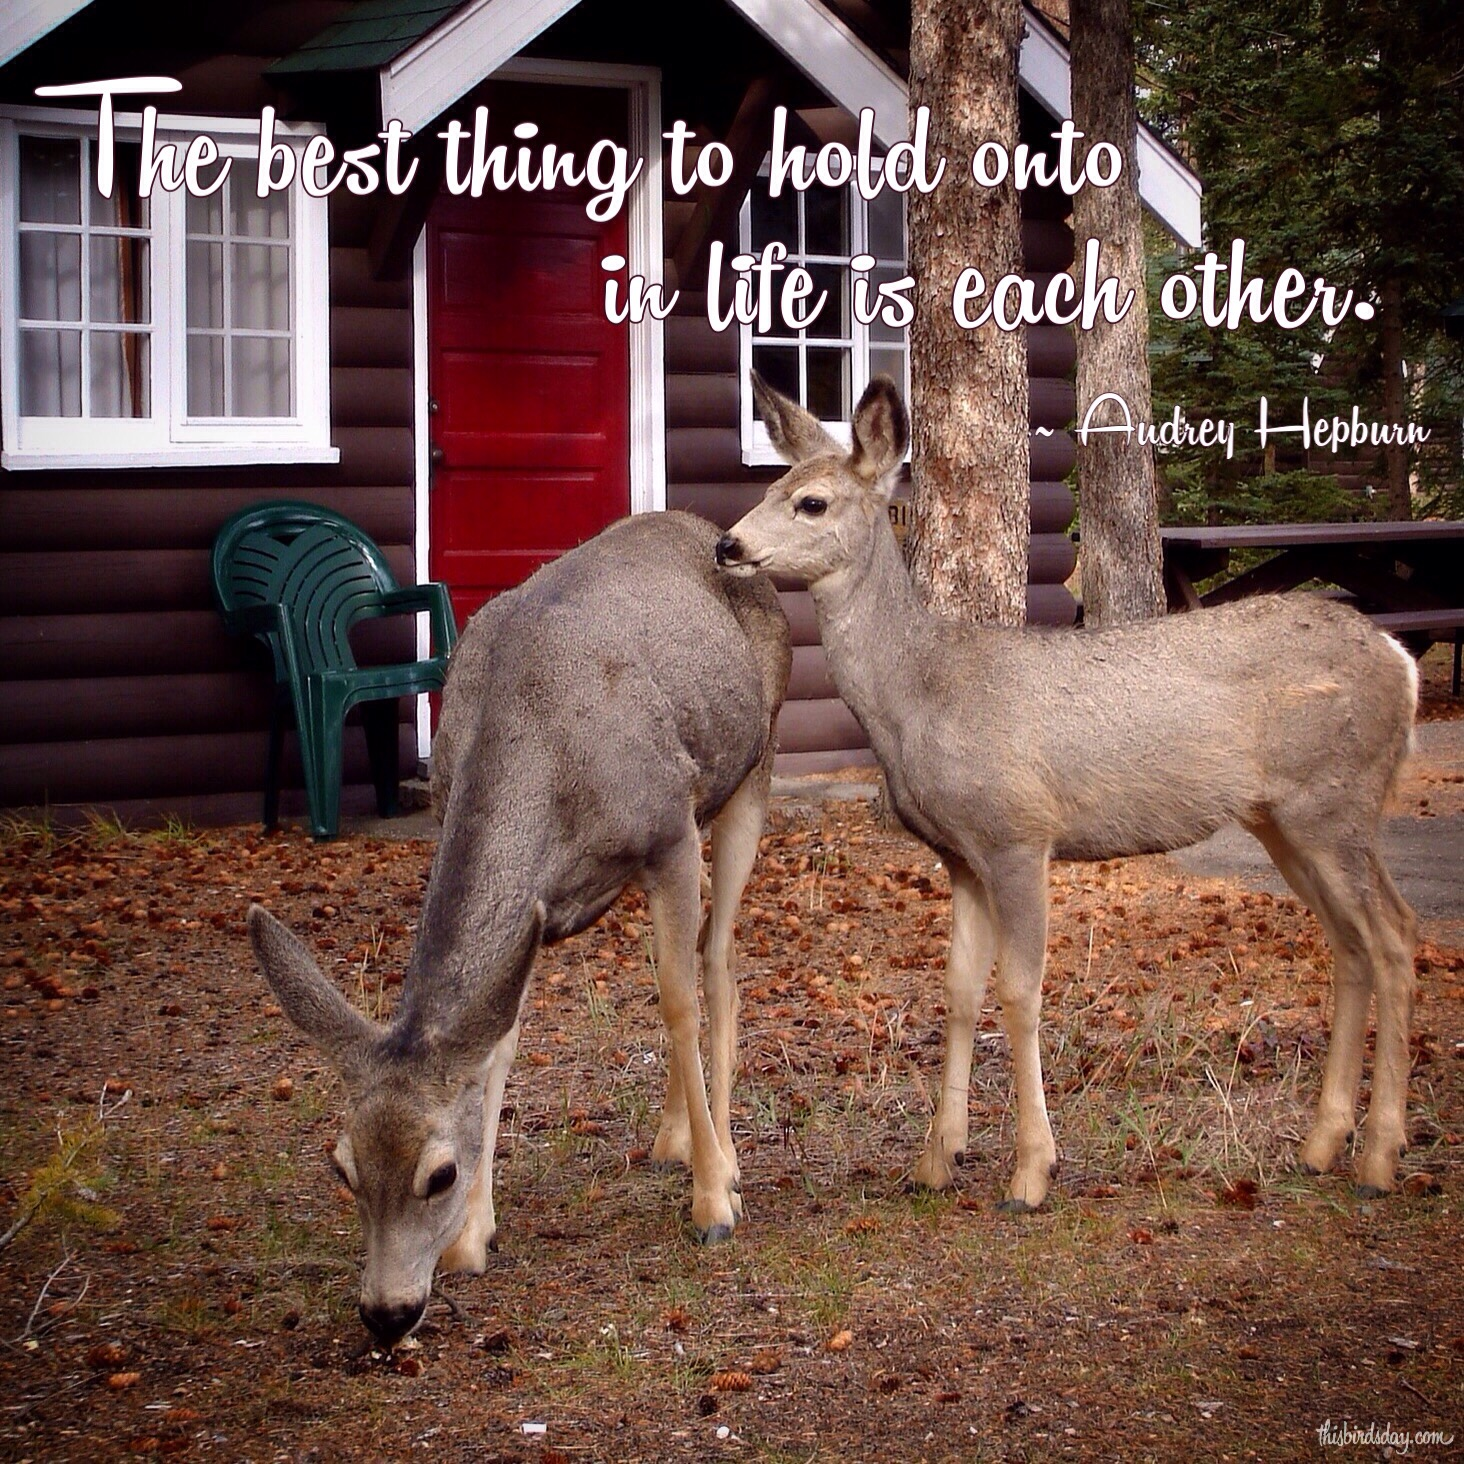 """The best thing to hold onto in life is each other."" Audrey Hepburn. Photo copyright Sheri Landry"